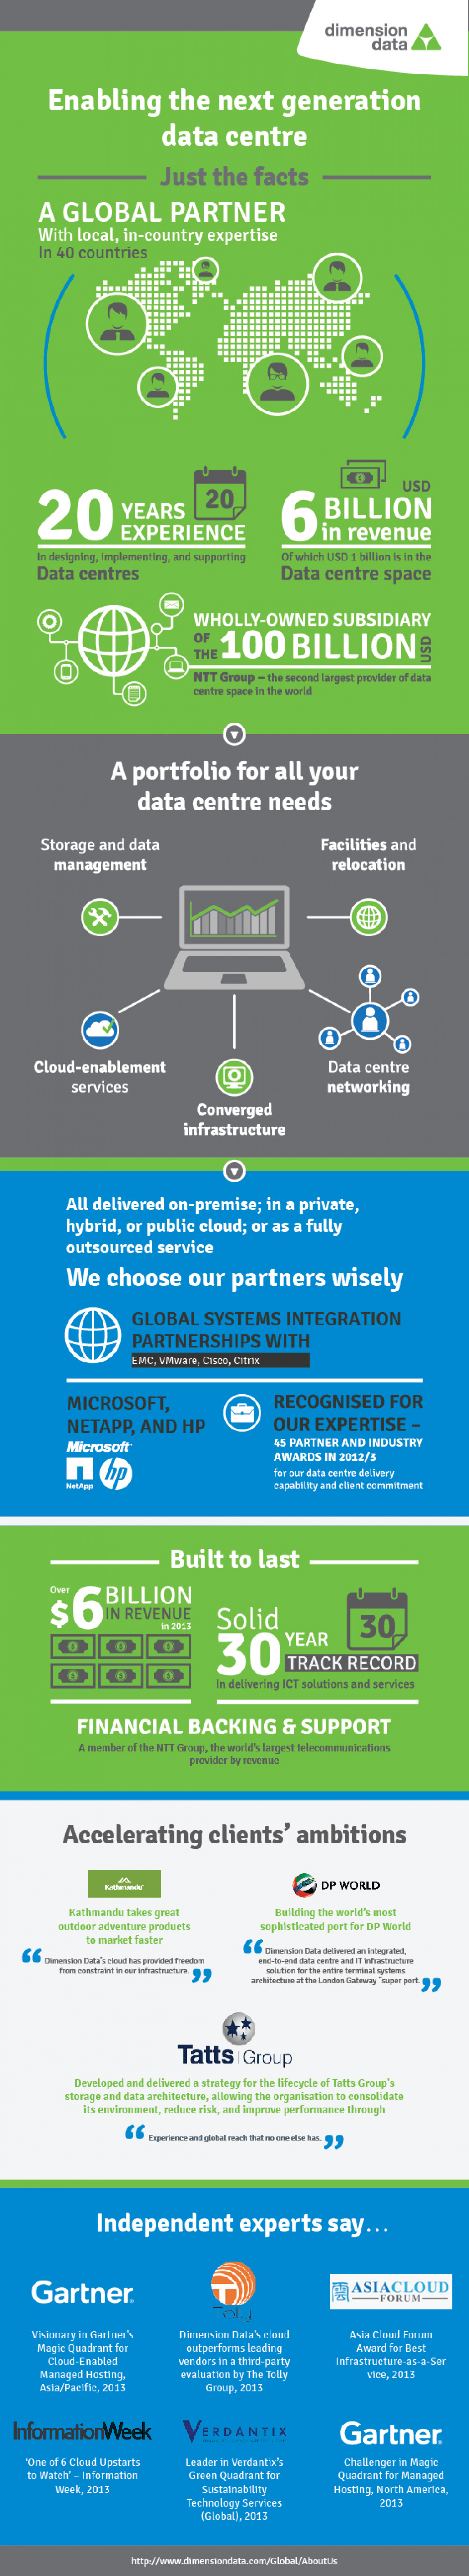 Enabling The Next Generation Data Centre Infographic